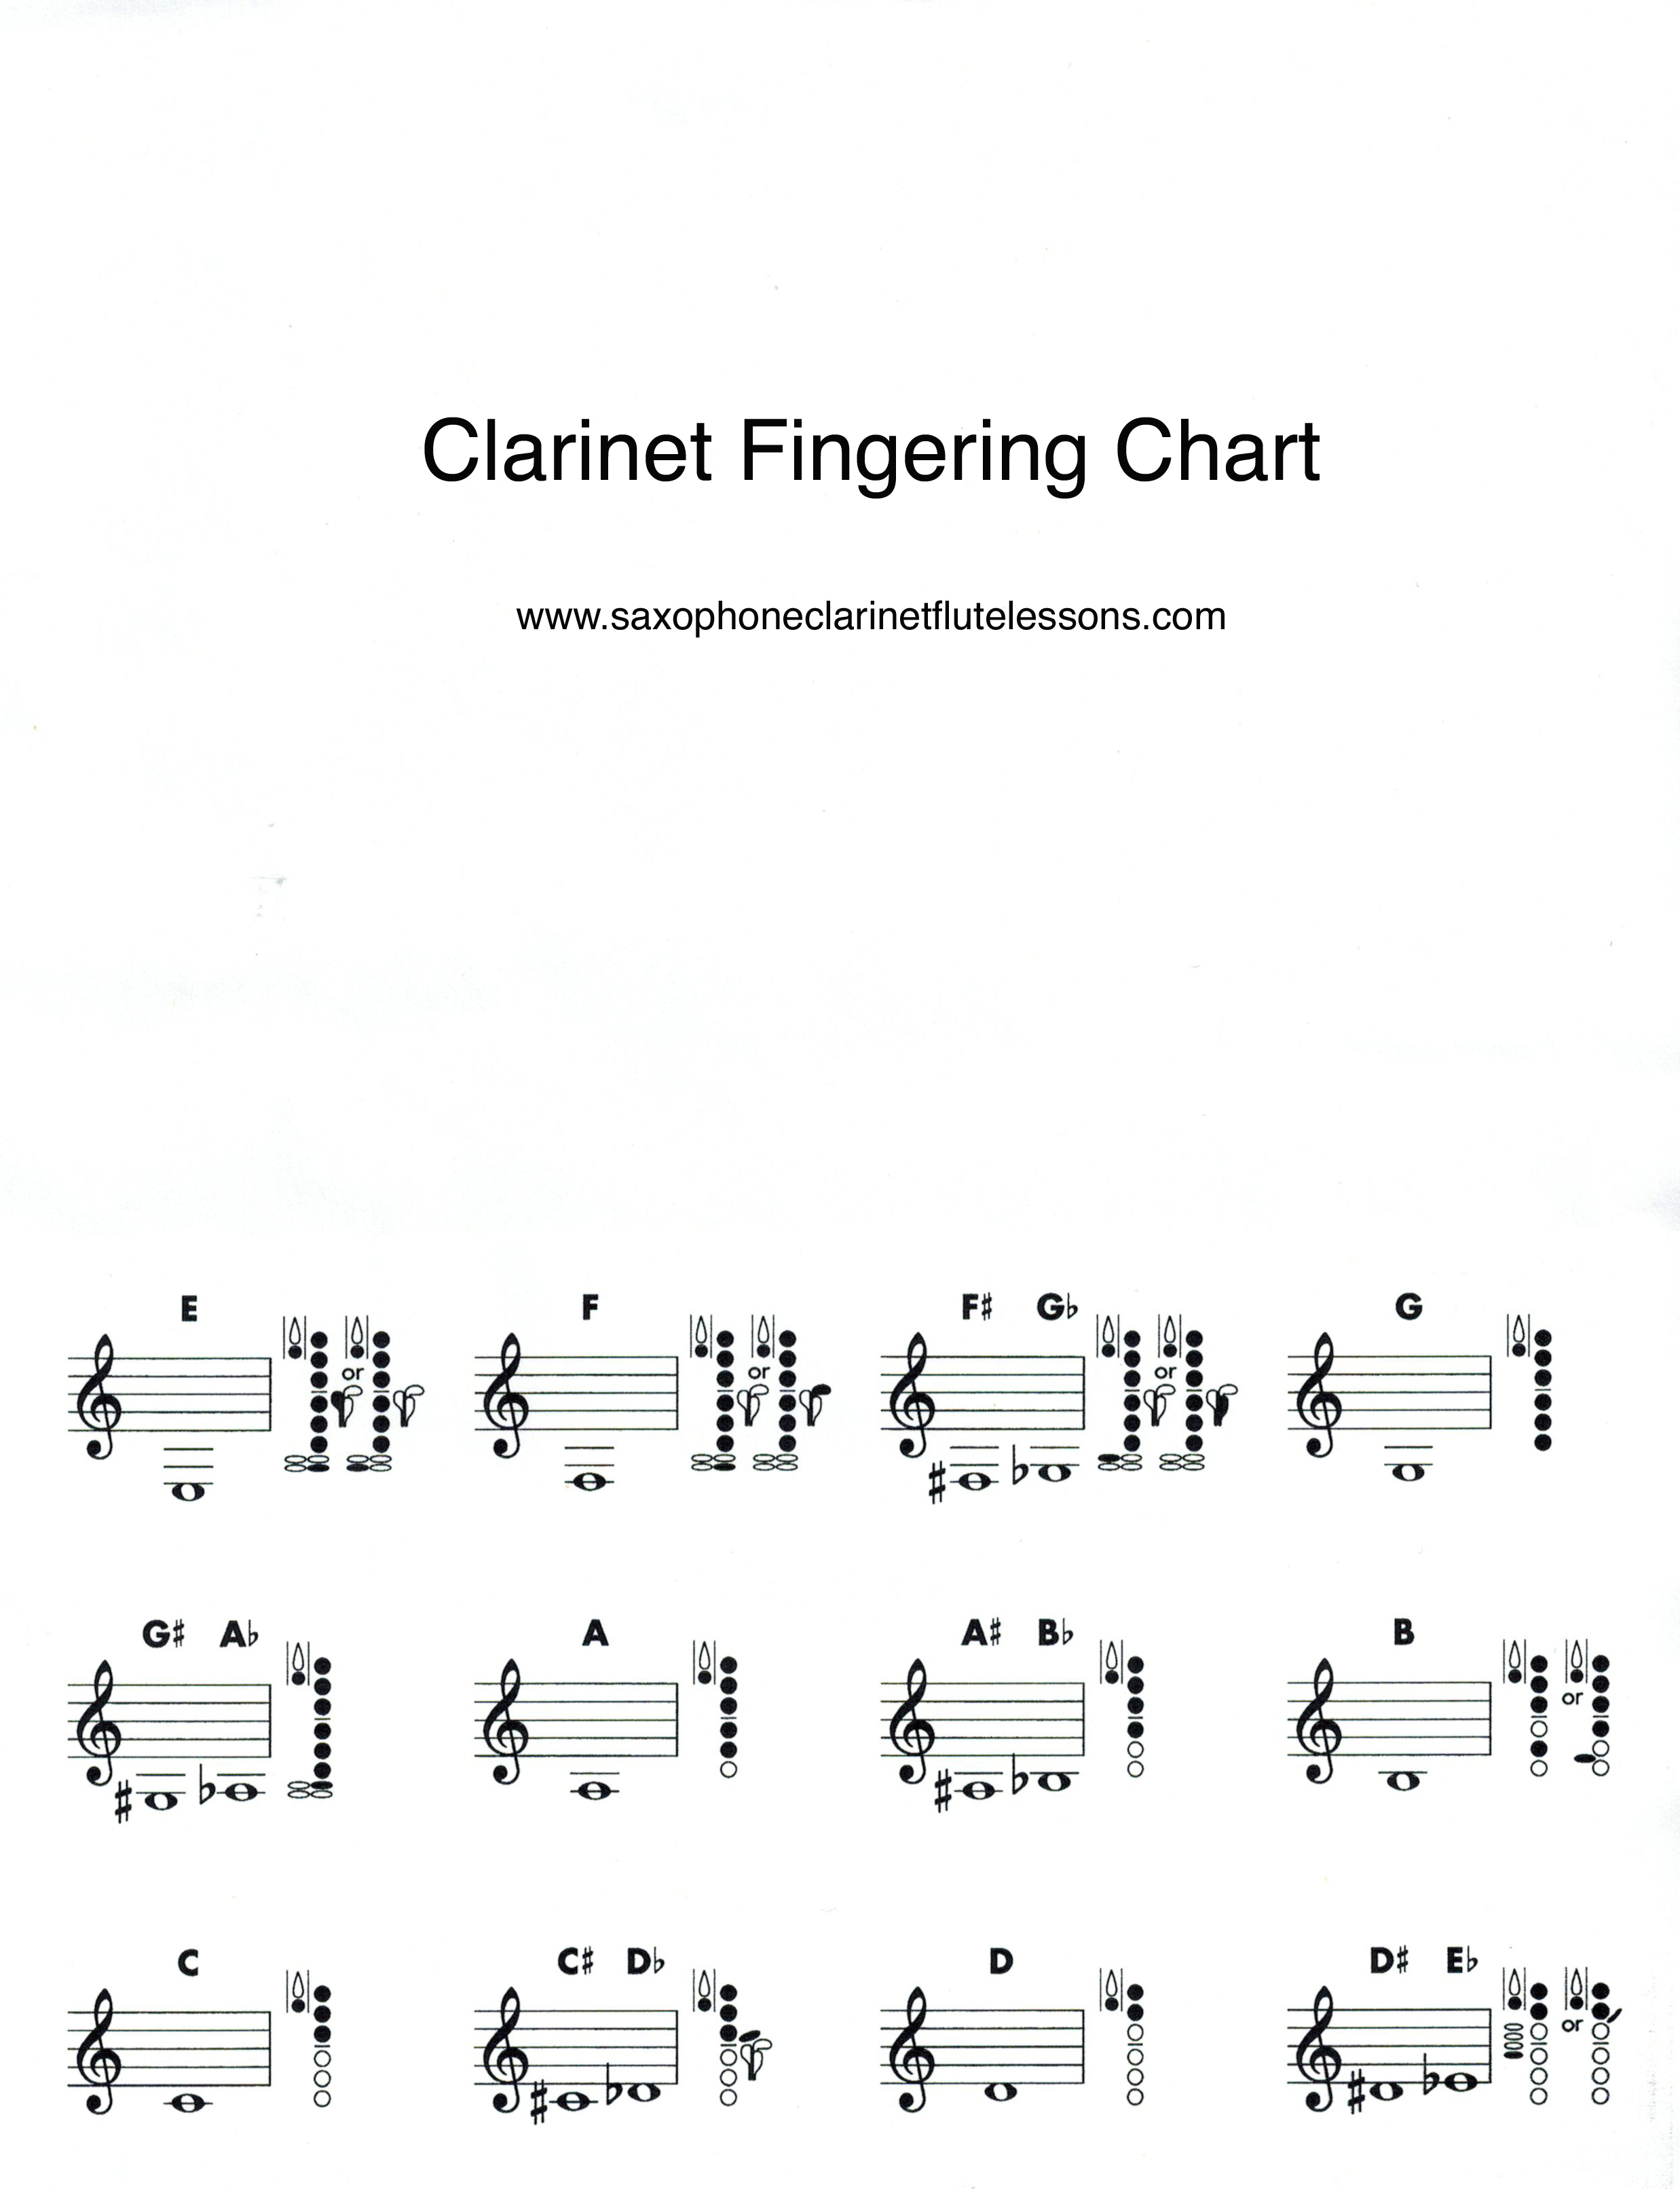 basic clarinet fingering chart saxophone clarinet and flute lessons with ken moran [ 1500 x 1955 Pixel ]